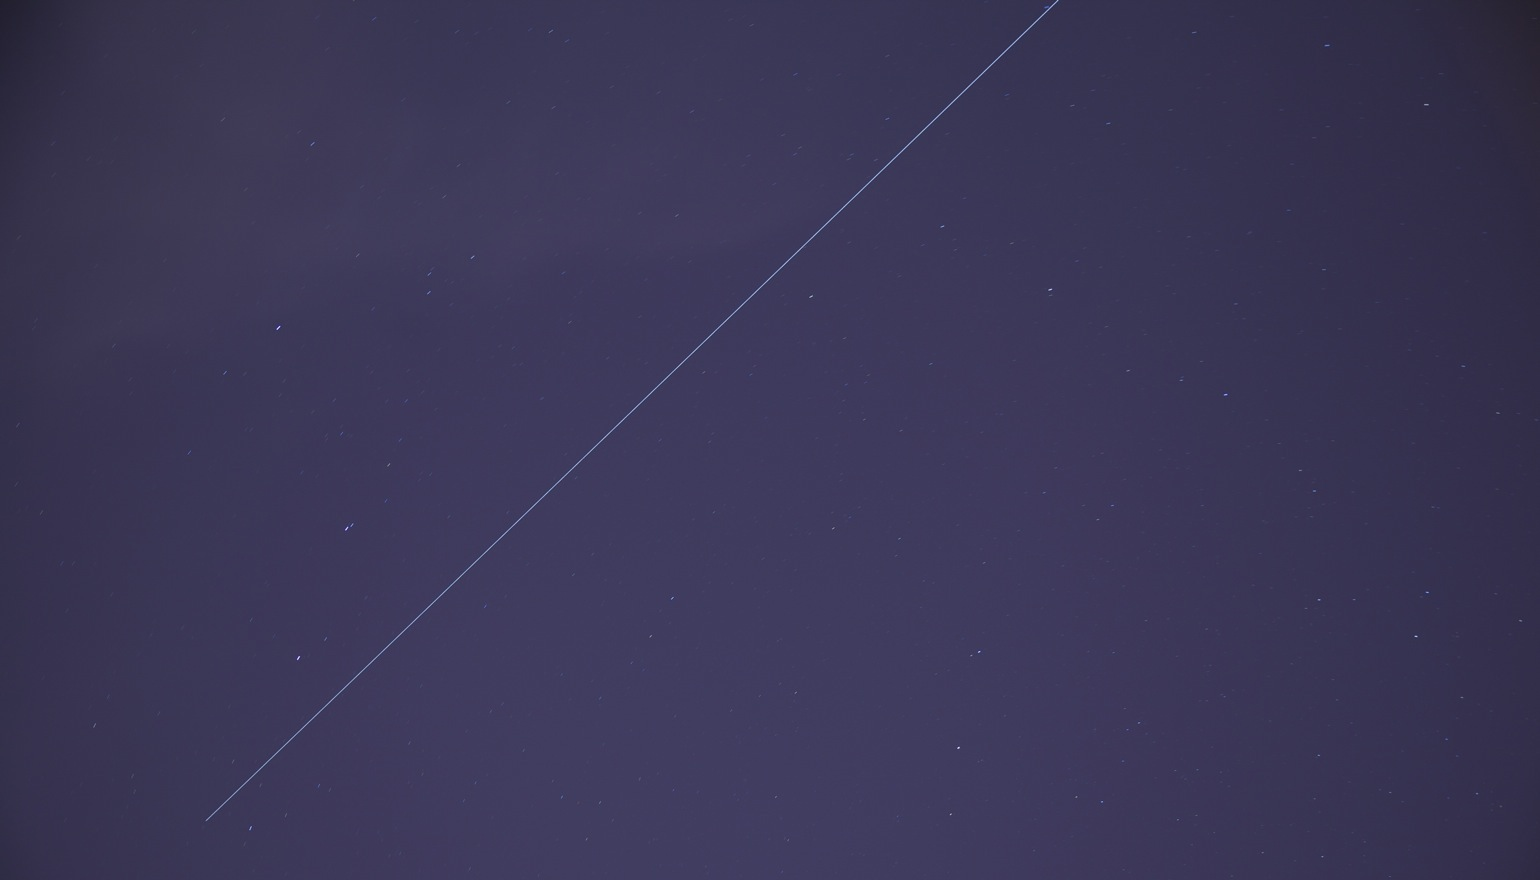 ISS on the 13th of June, 1